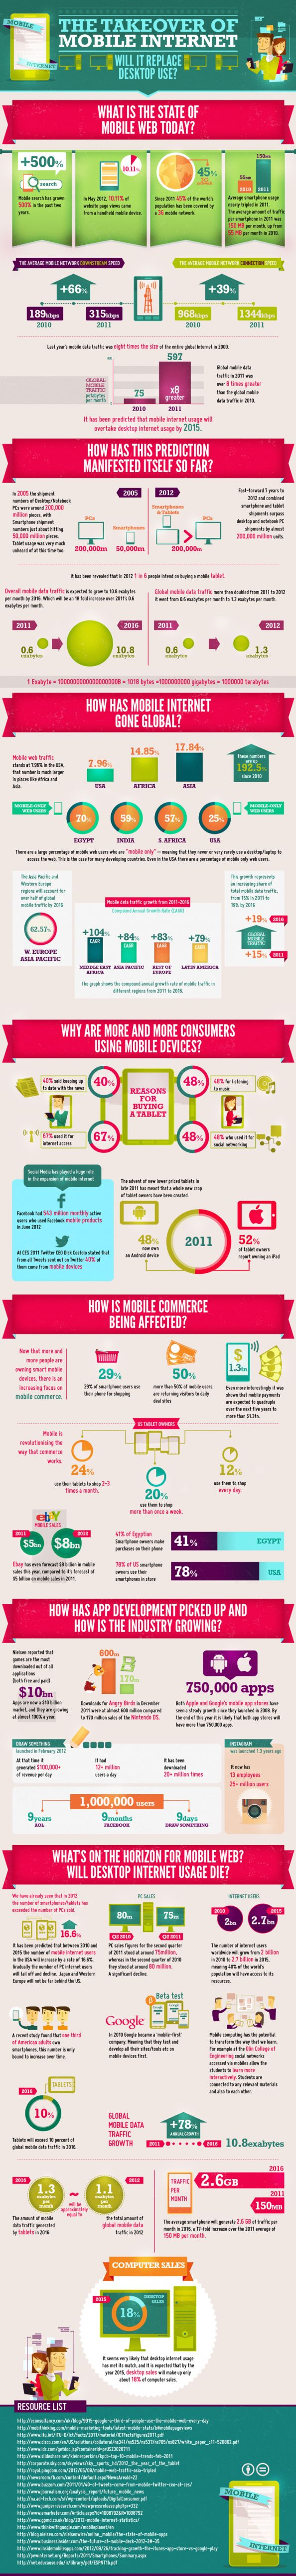 The Takeover Of Mobile Internet - Will It Replace Desktop Use?